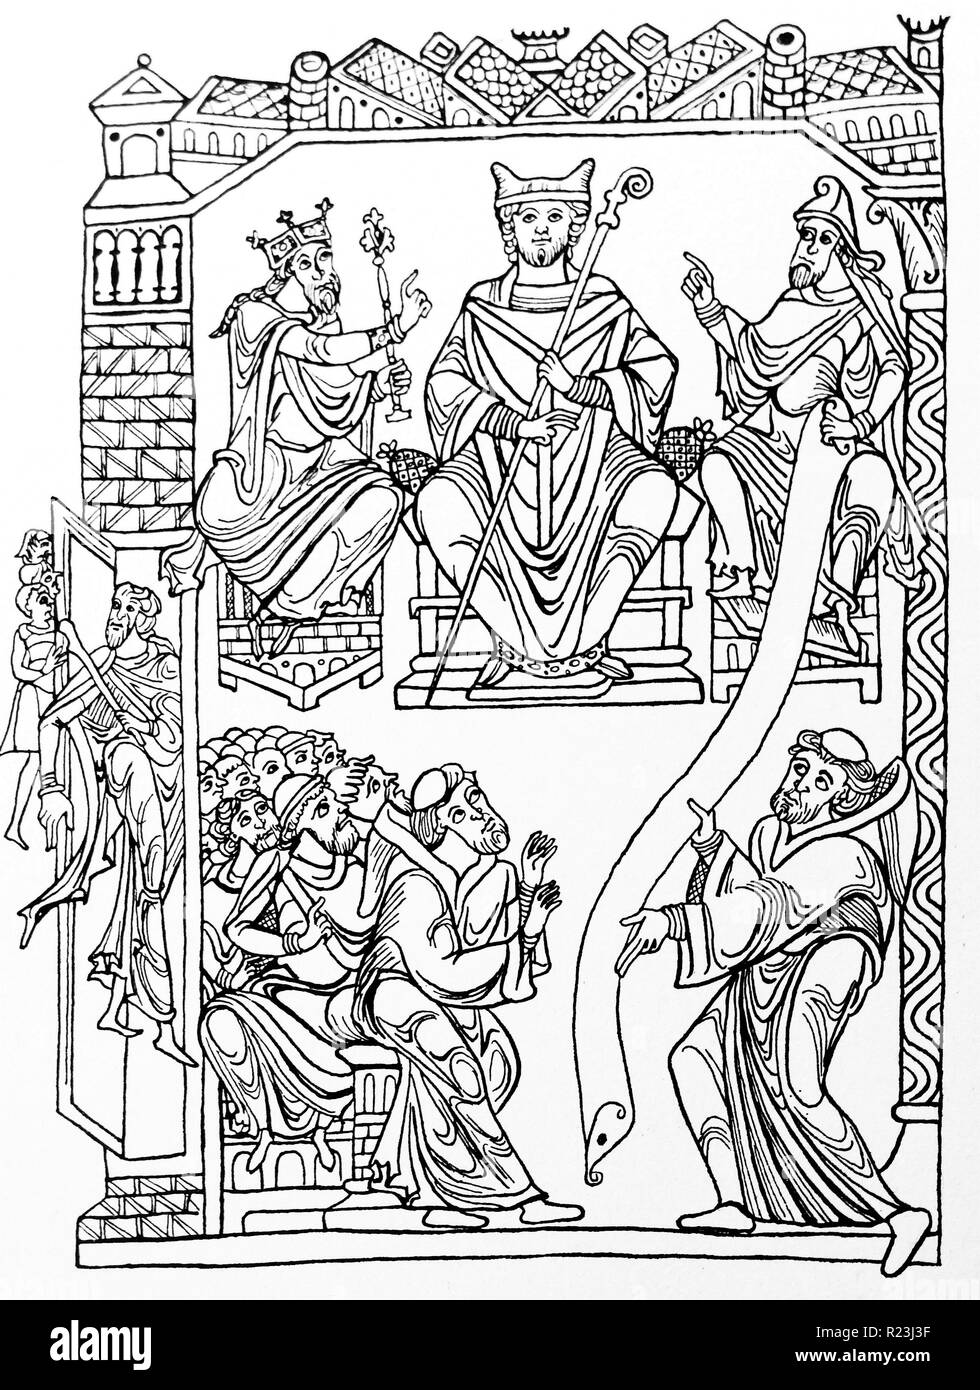 Line drawing of St Benedict handing his book (the Rule) to a group of monks symbolising the foundation of Western monasticism. Dated 12th Century - Stock Image